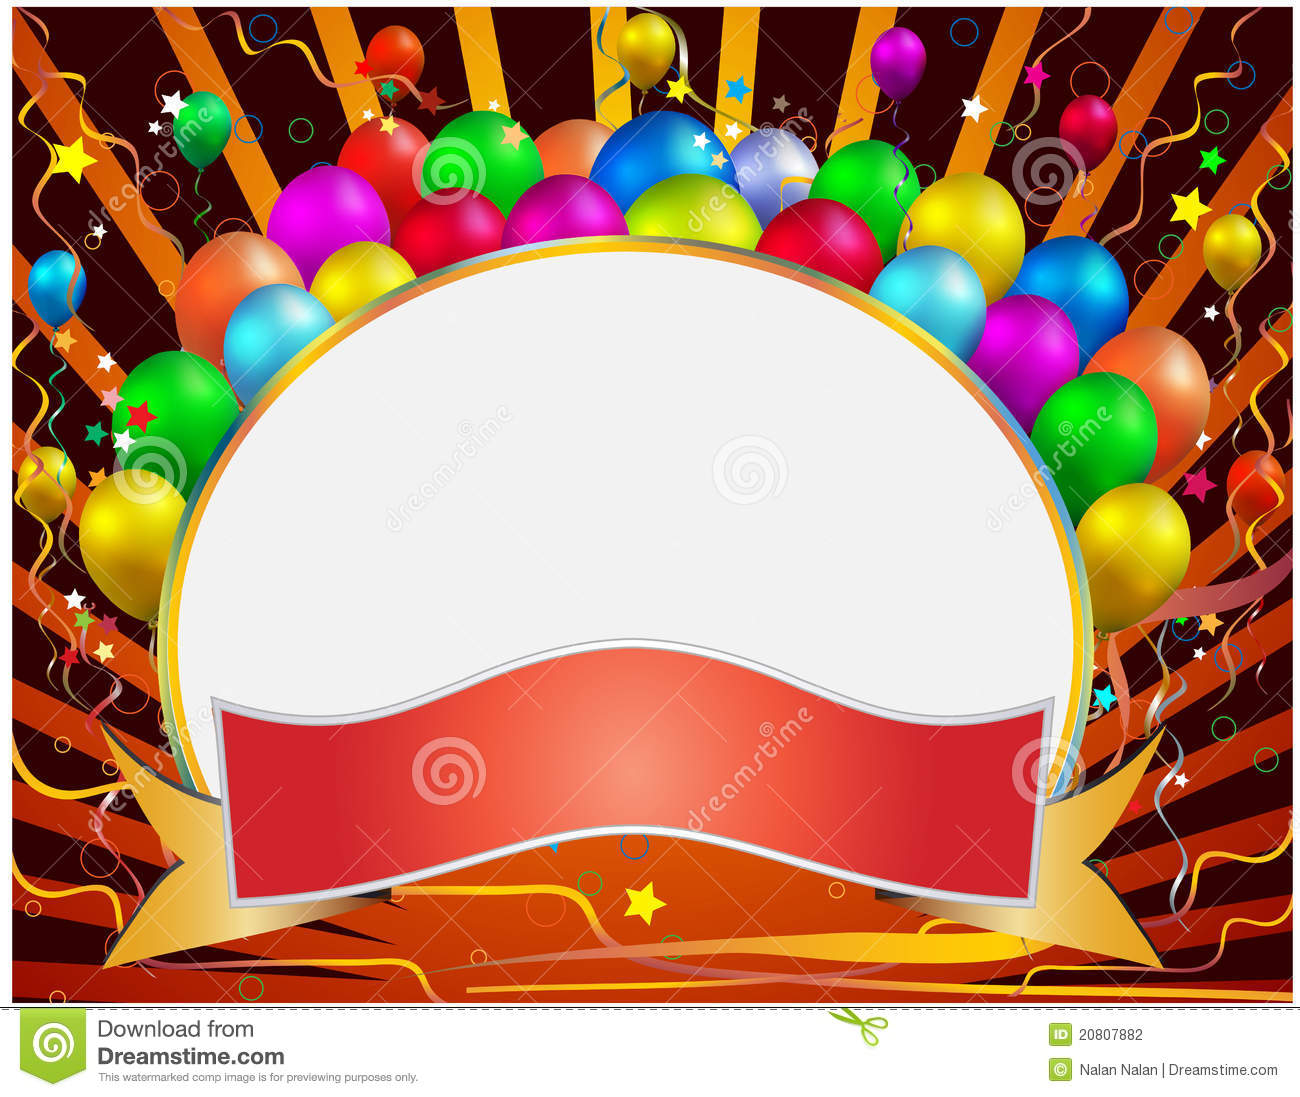 celebration banner royalty free stock photos  image: 20677978